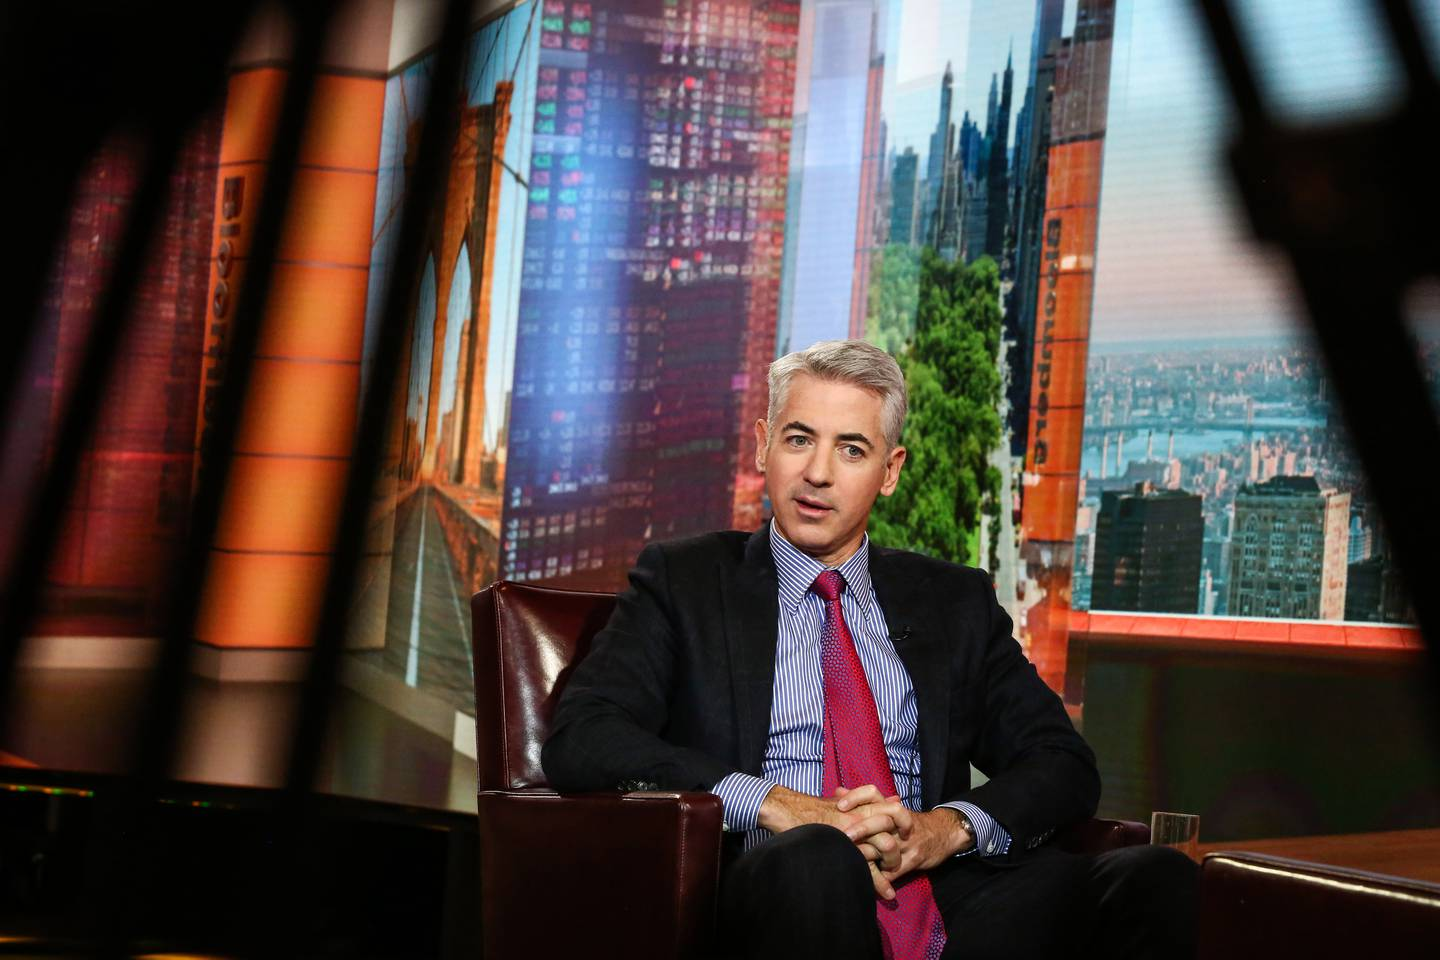 Bill Ackman, chief executive officer of Pershing Square Capital Management LP, speaks during a Bloomberg Television interview in New York, U.S., on Wednesday, Nov. 1, 2017. Ackman discussed his proxy fight at Automatic Data Processing. Photographer: Christopher Goodney/Bloomberg